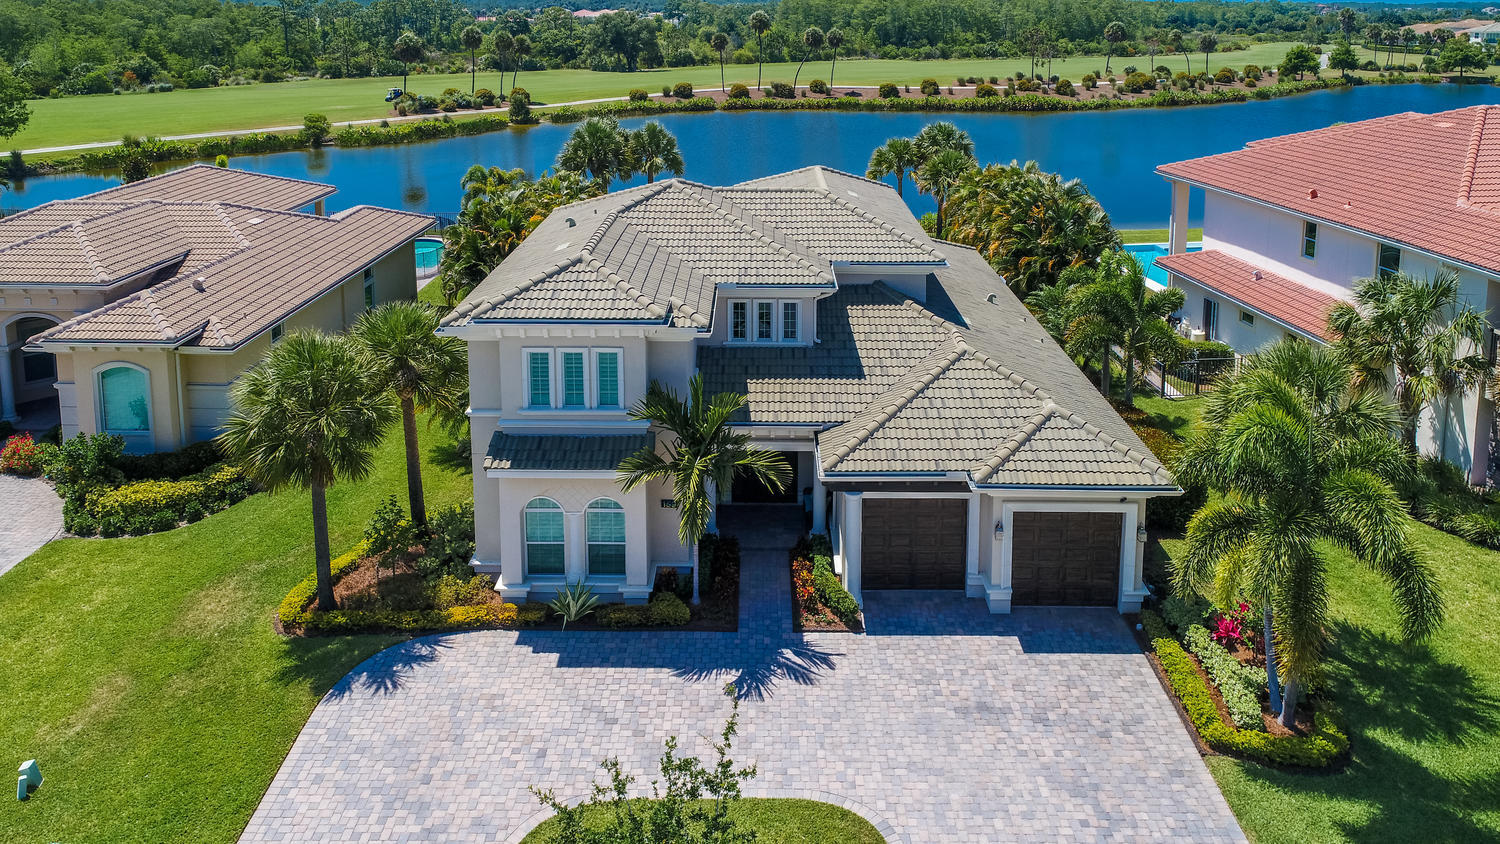 New Home for sale at 159 Sonata Drive in Jupiter